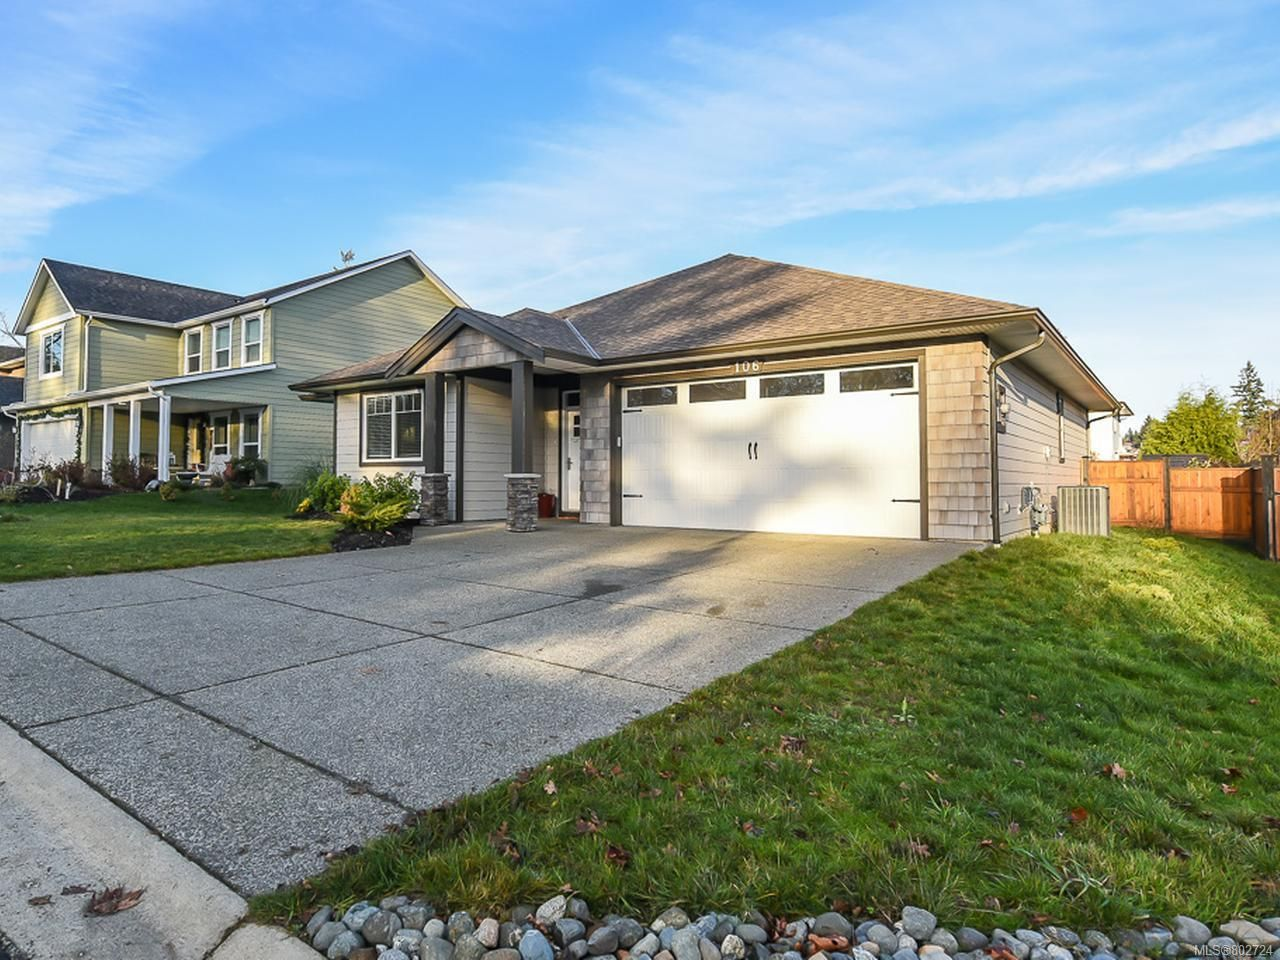 Photo 21: Photos: 106 2883 Muir Rd in COURTENAY: CV Courtenay East House for sale (Comox Valley)  : MLS®# 802724